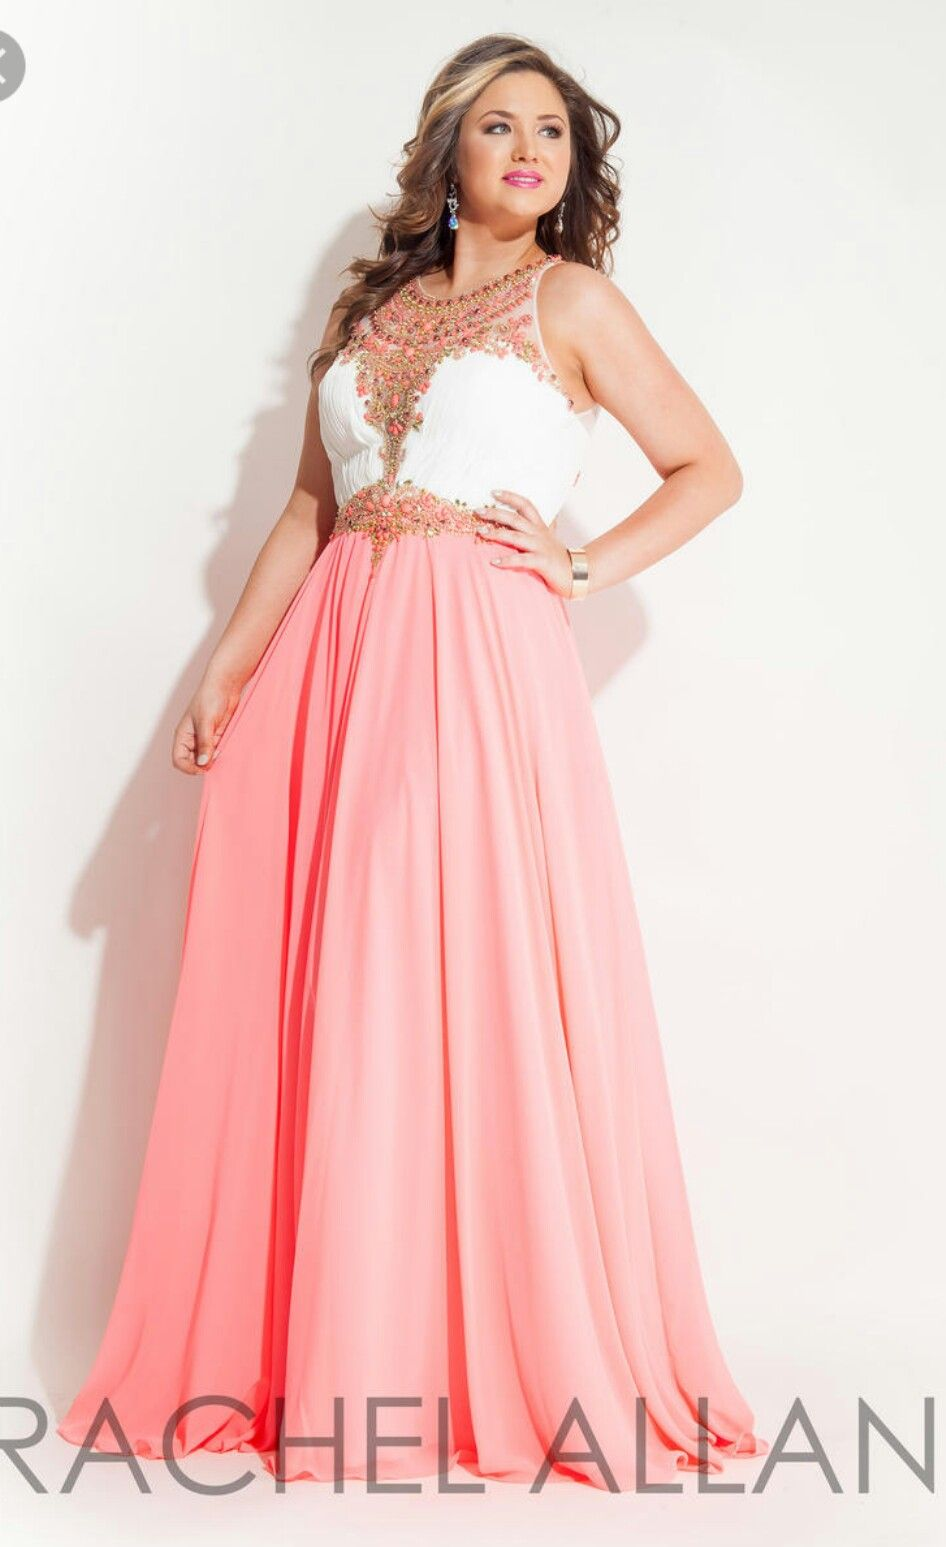 Plus Size Pageant Dresses Uk